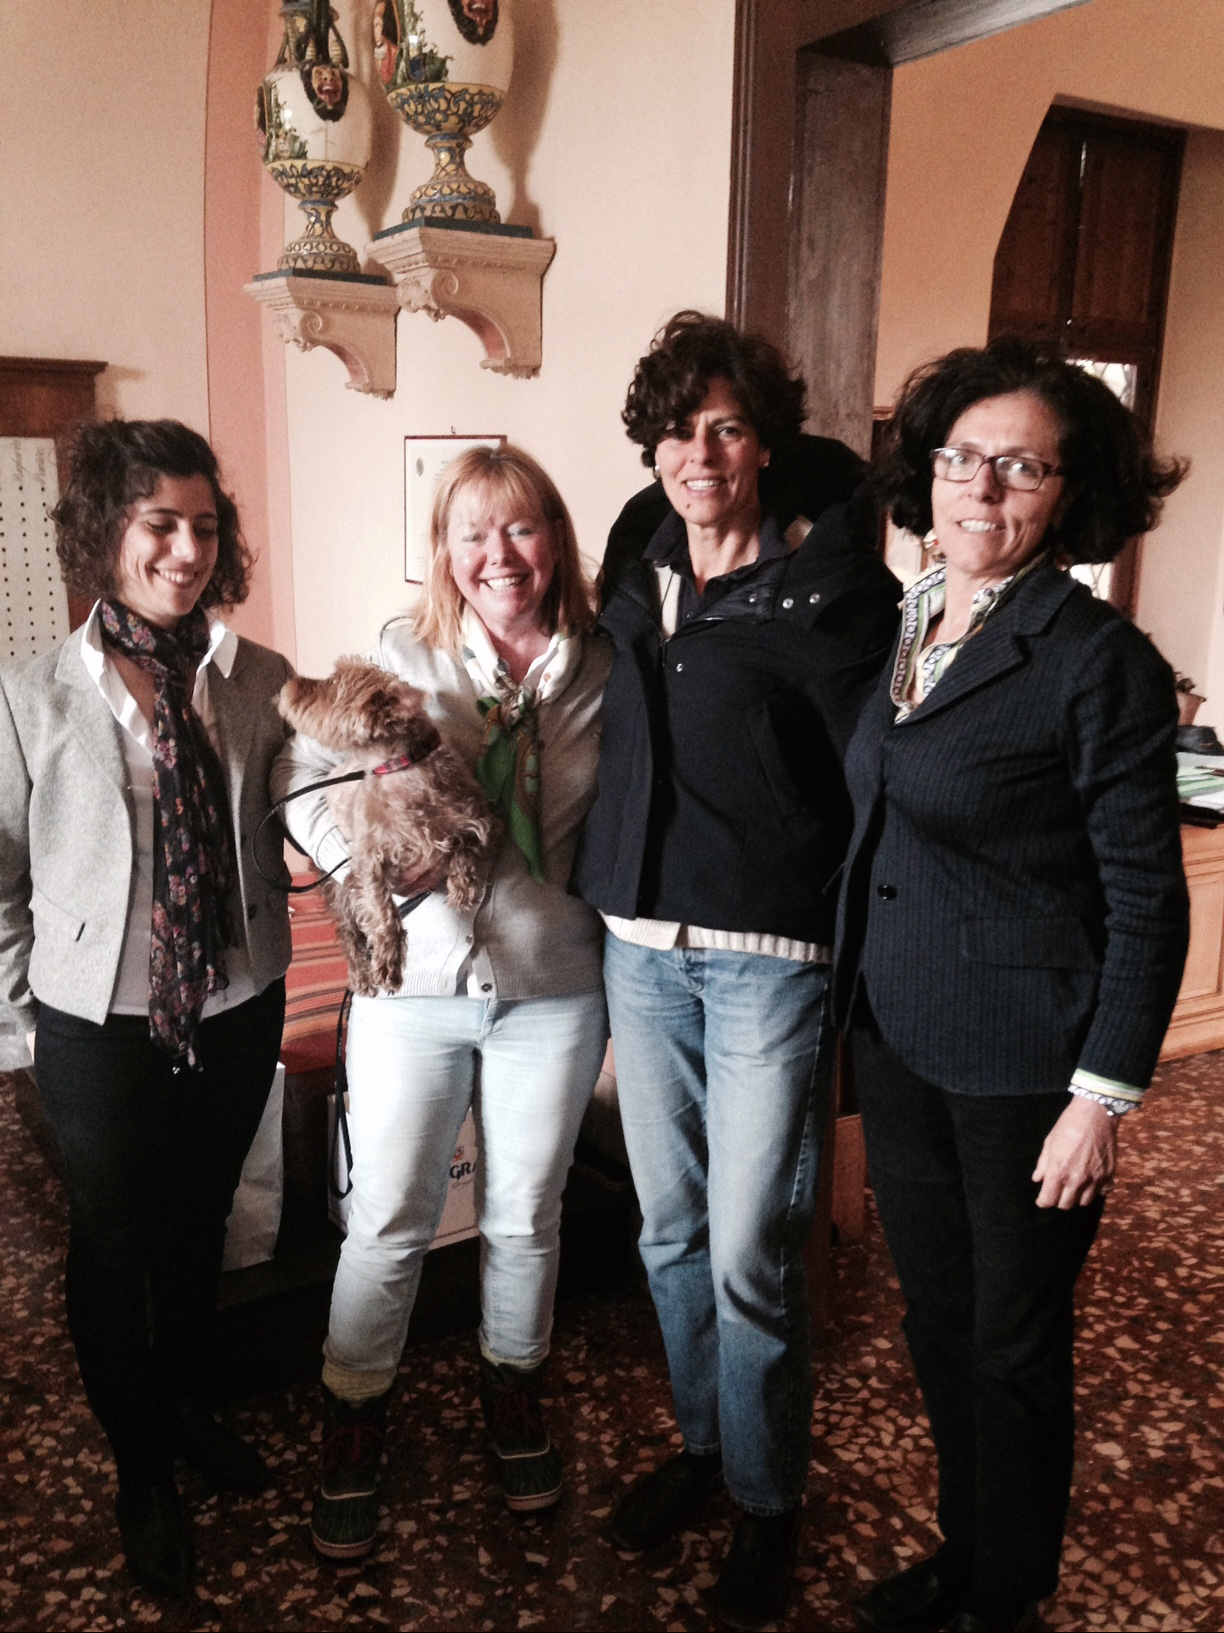 Ilaria, Janet, Sasha, Carla, Giovanna at Villa Angarano - wine tasting and fun!